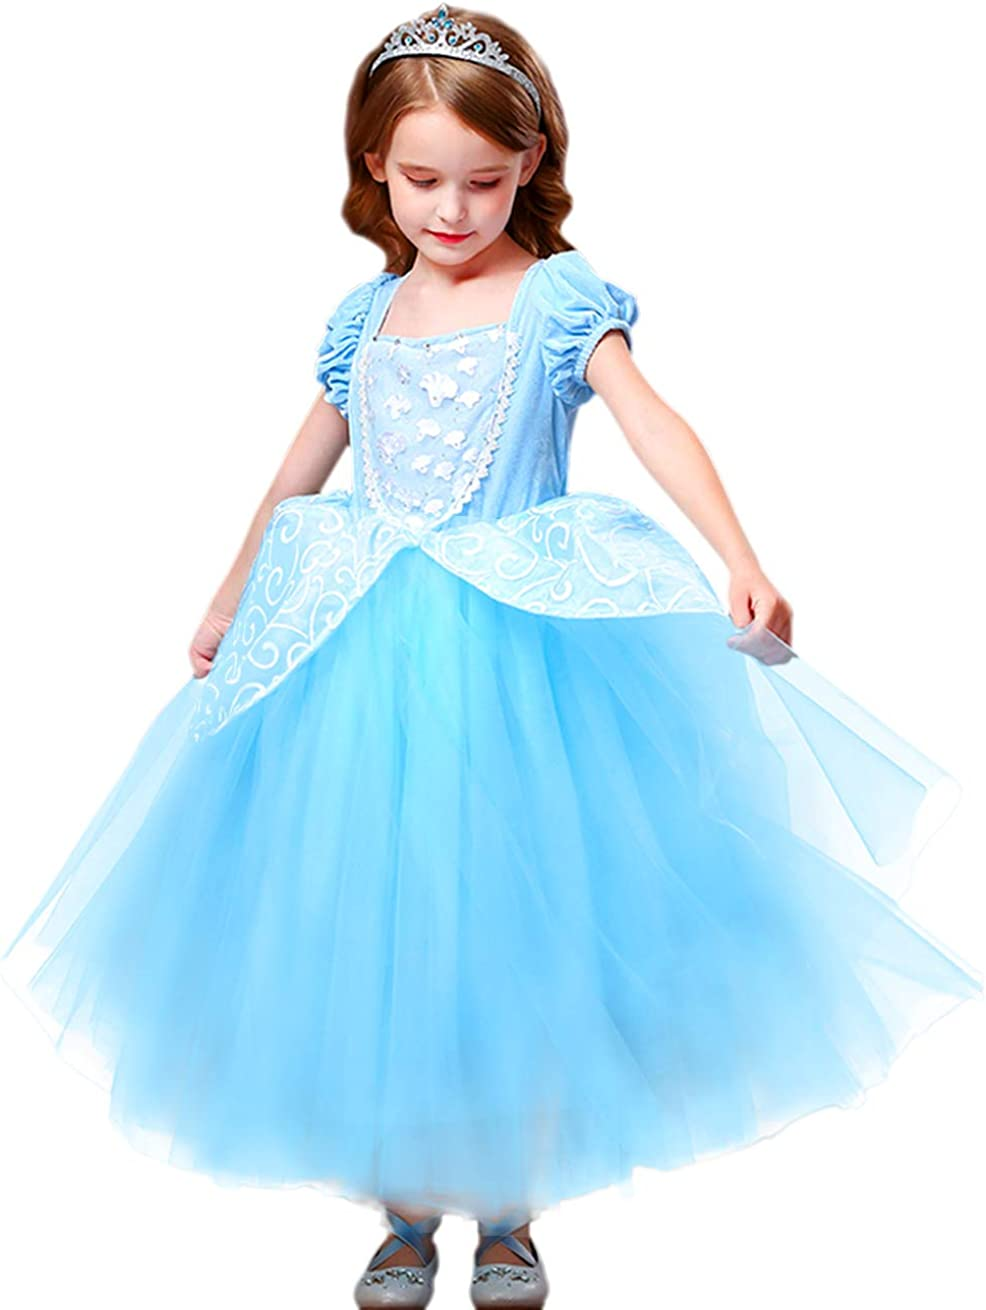 Princess Cinderella Girls Costume Party Fancy Halloween Cosplay Dress Up with Accessories